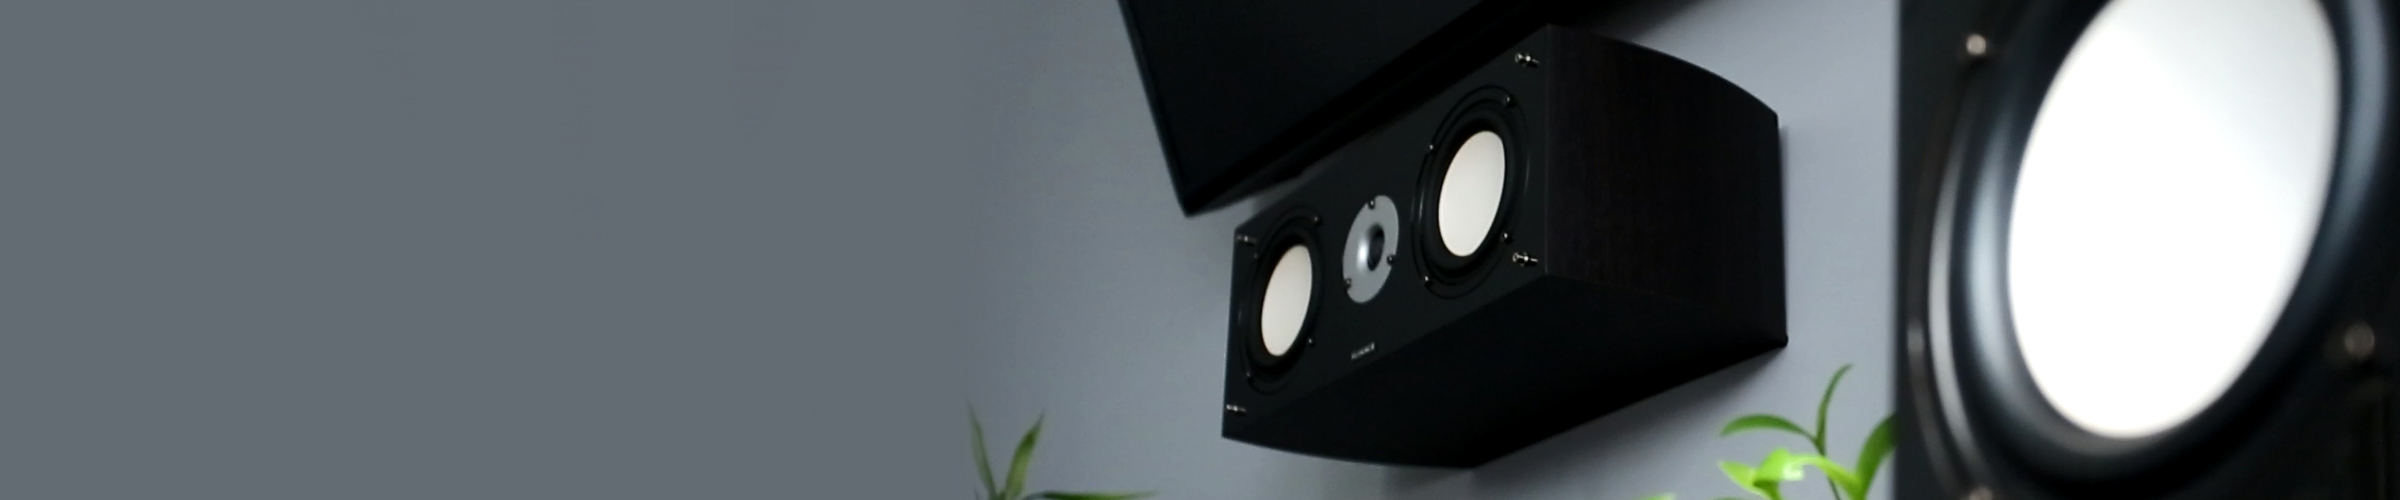 XL7C-DW Center Channel Speaker Intro